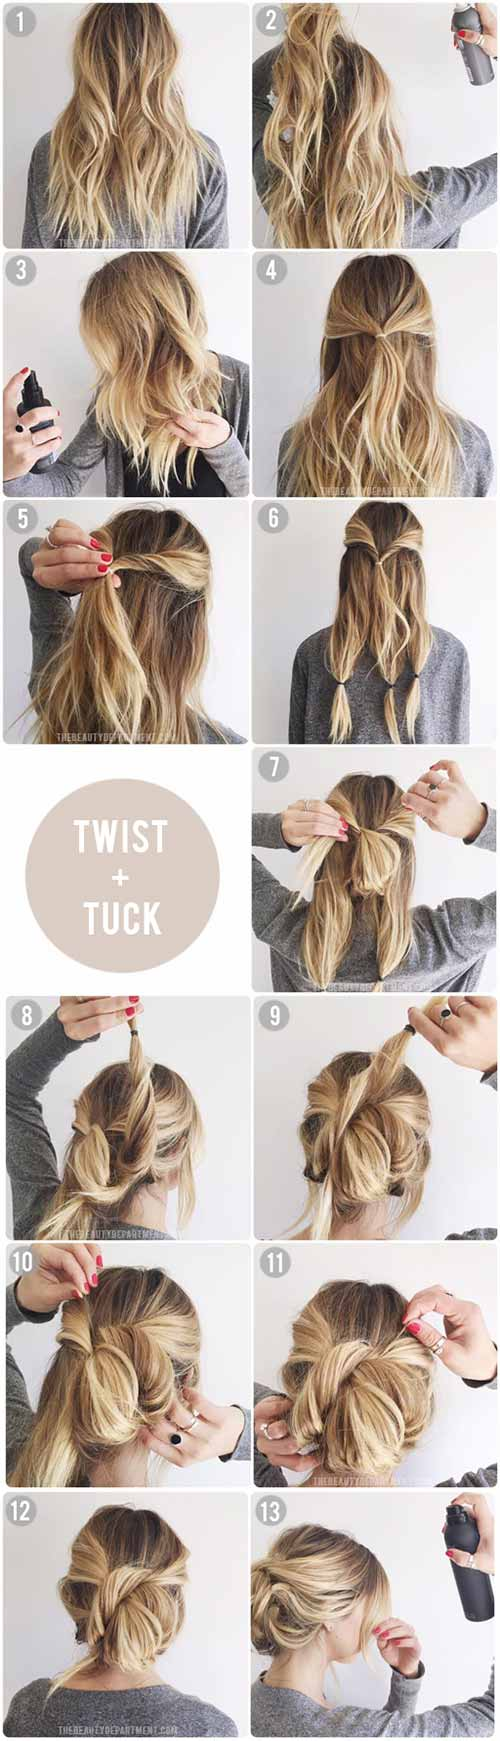 Updo Hairstyles - The Twist And Tuck